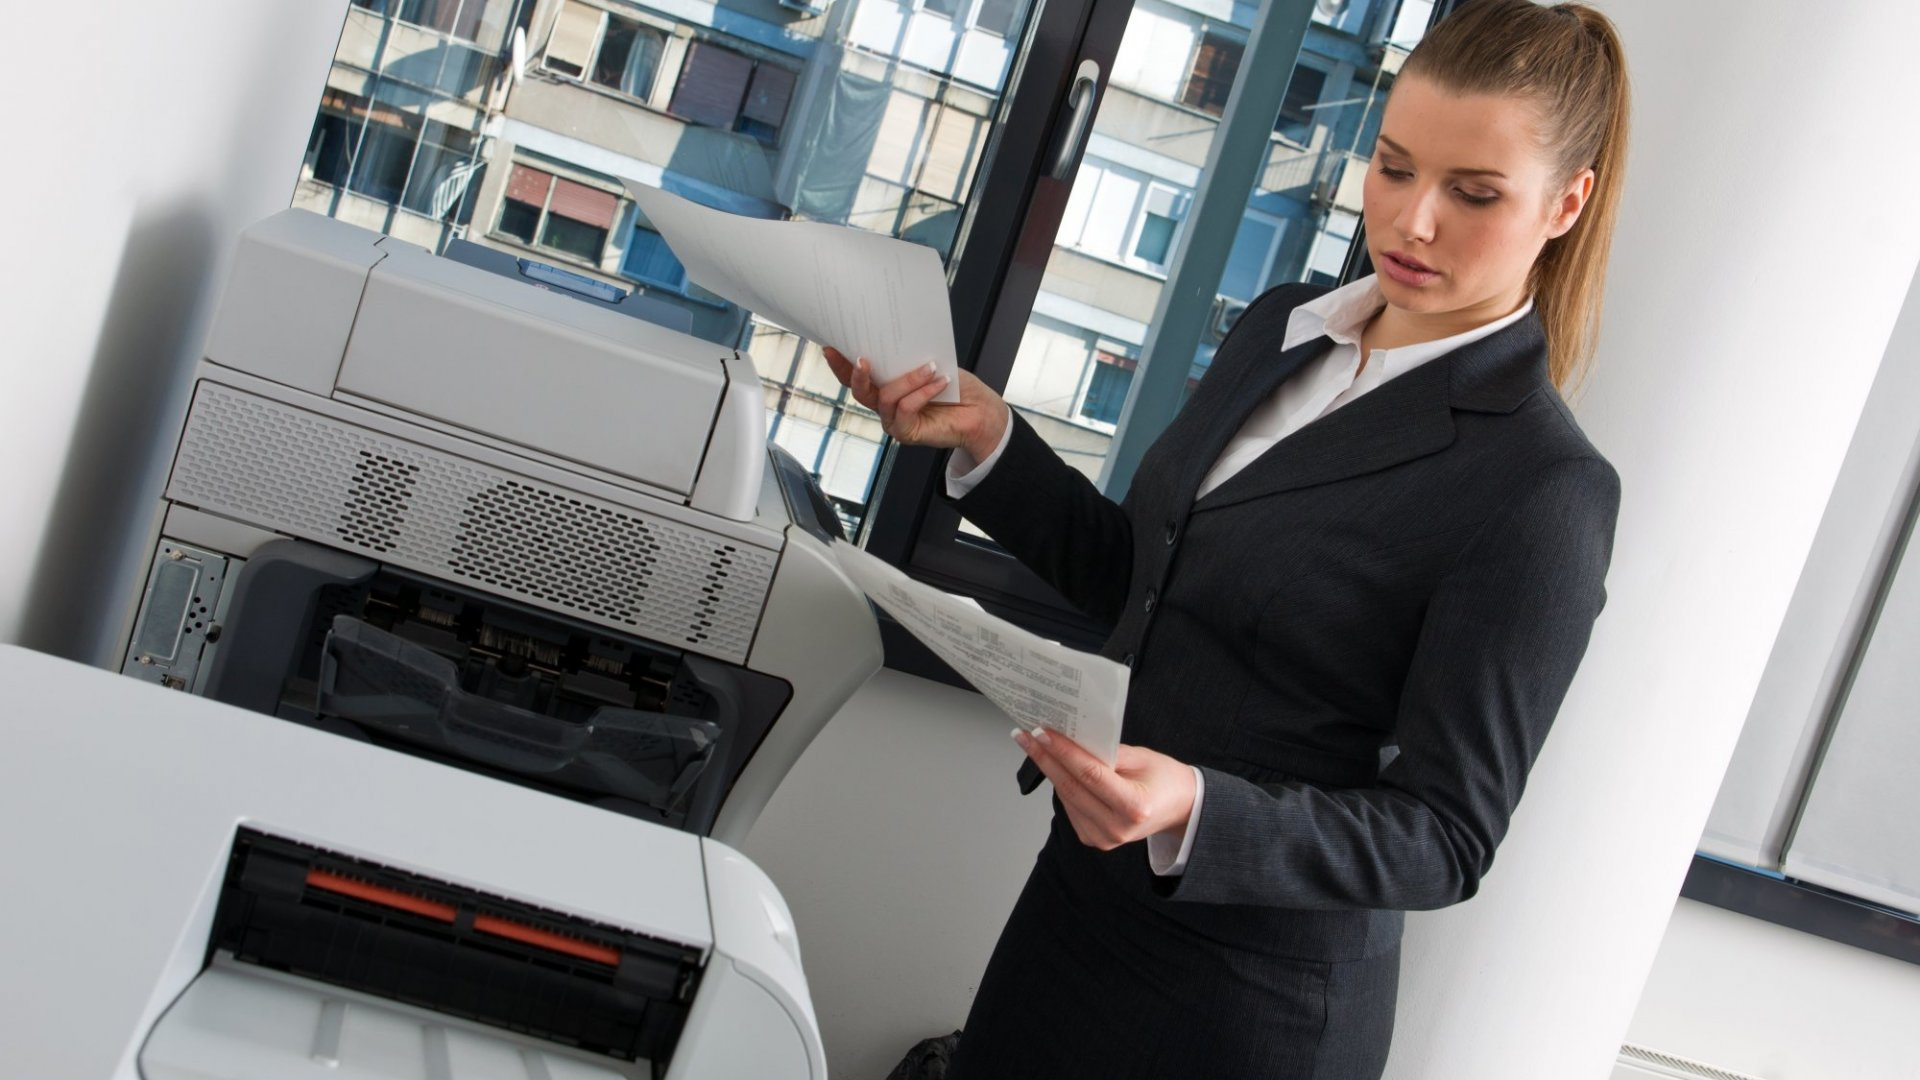 We're (Finally) Entering the Age of Paperless Offices